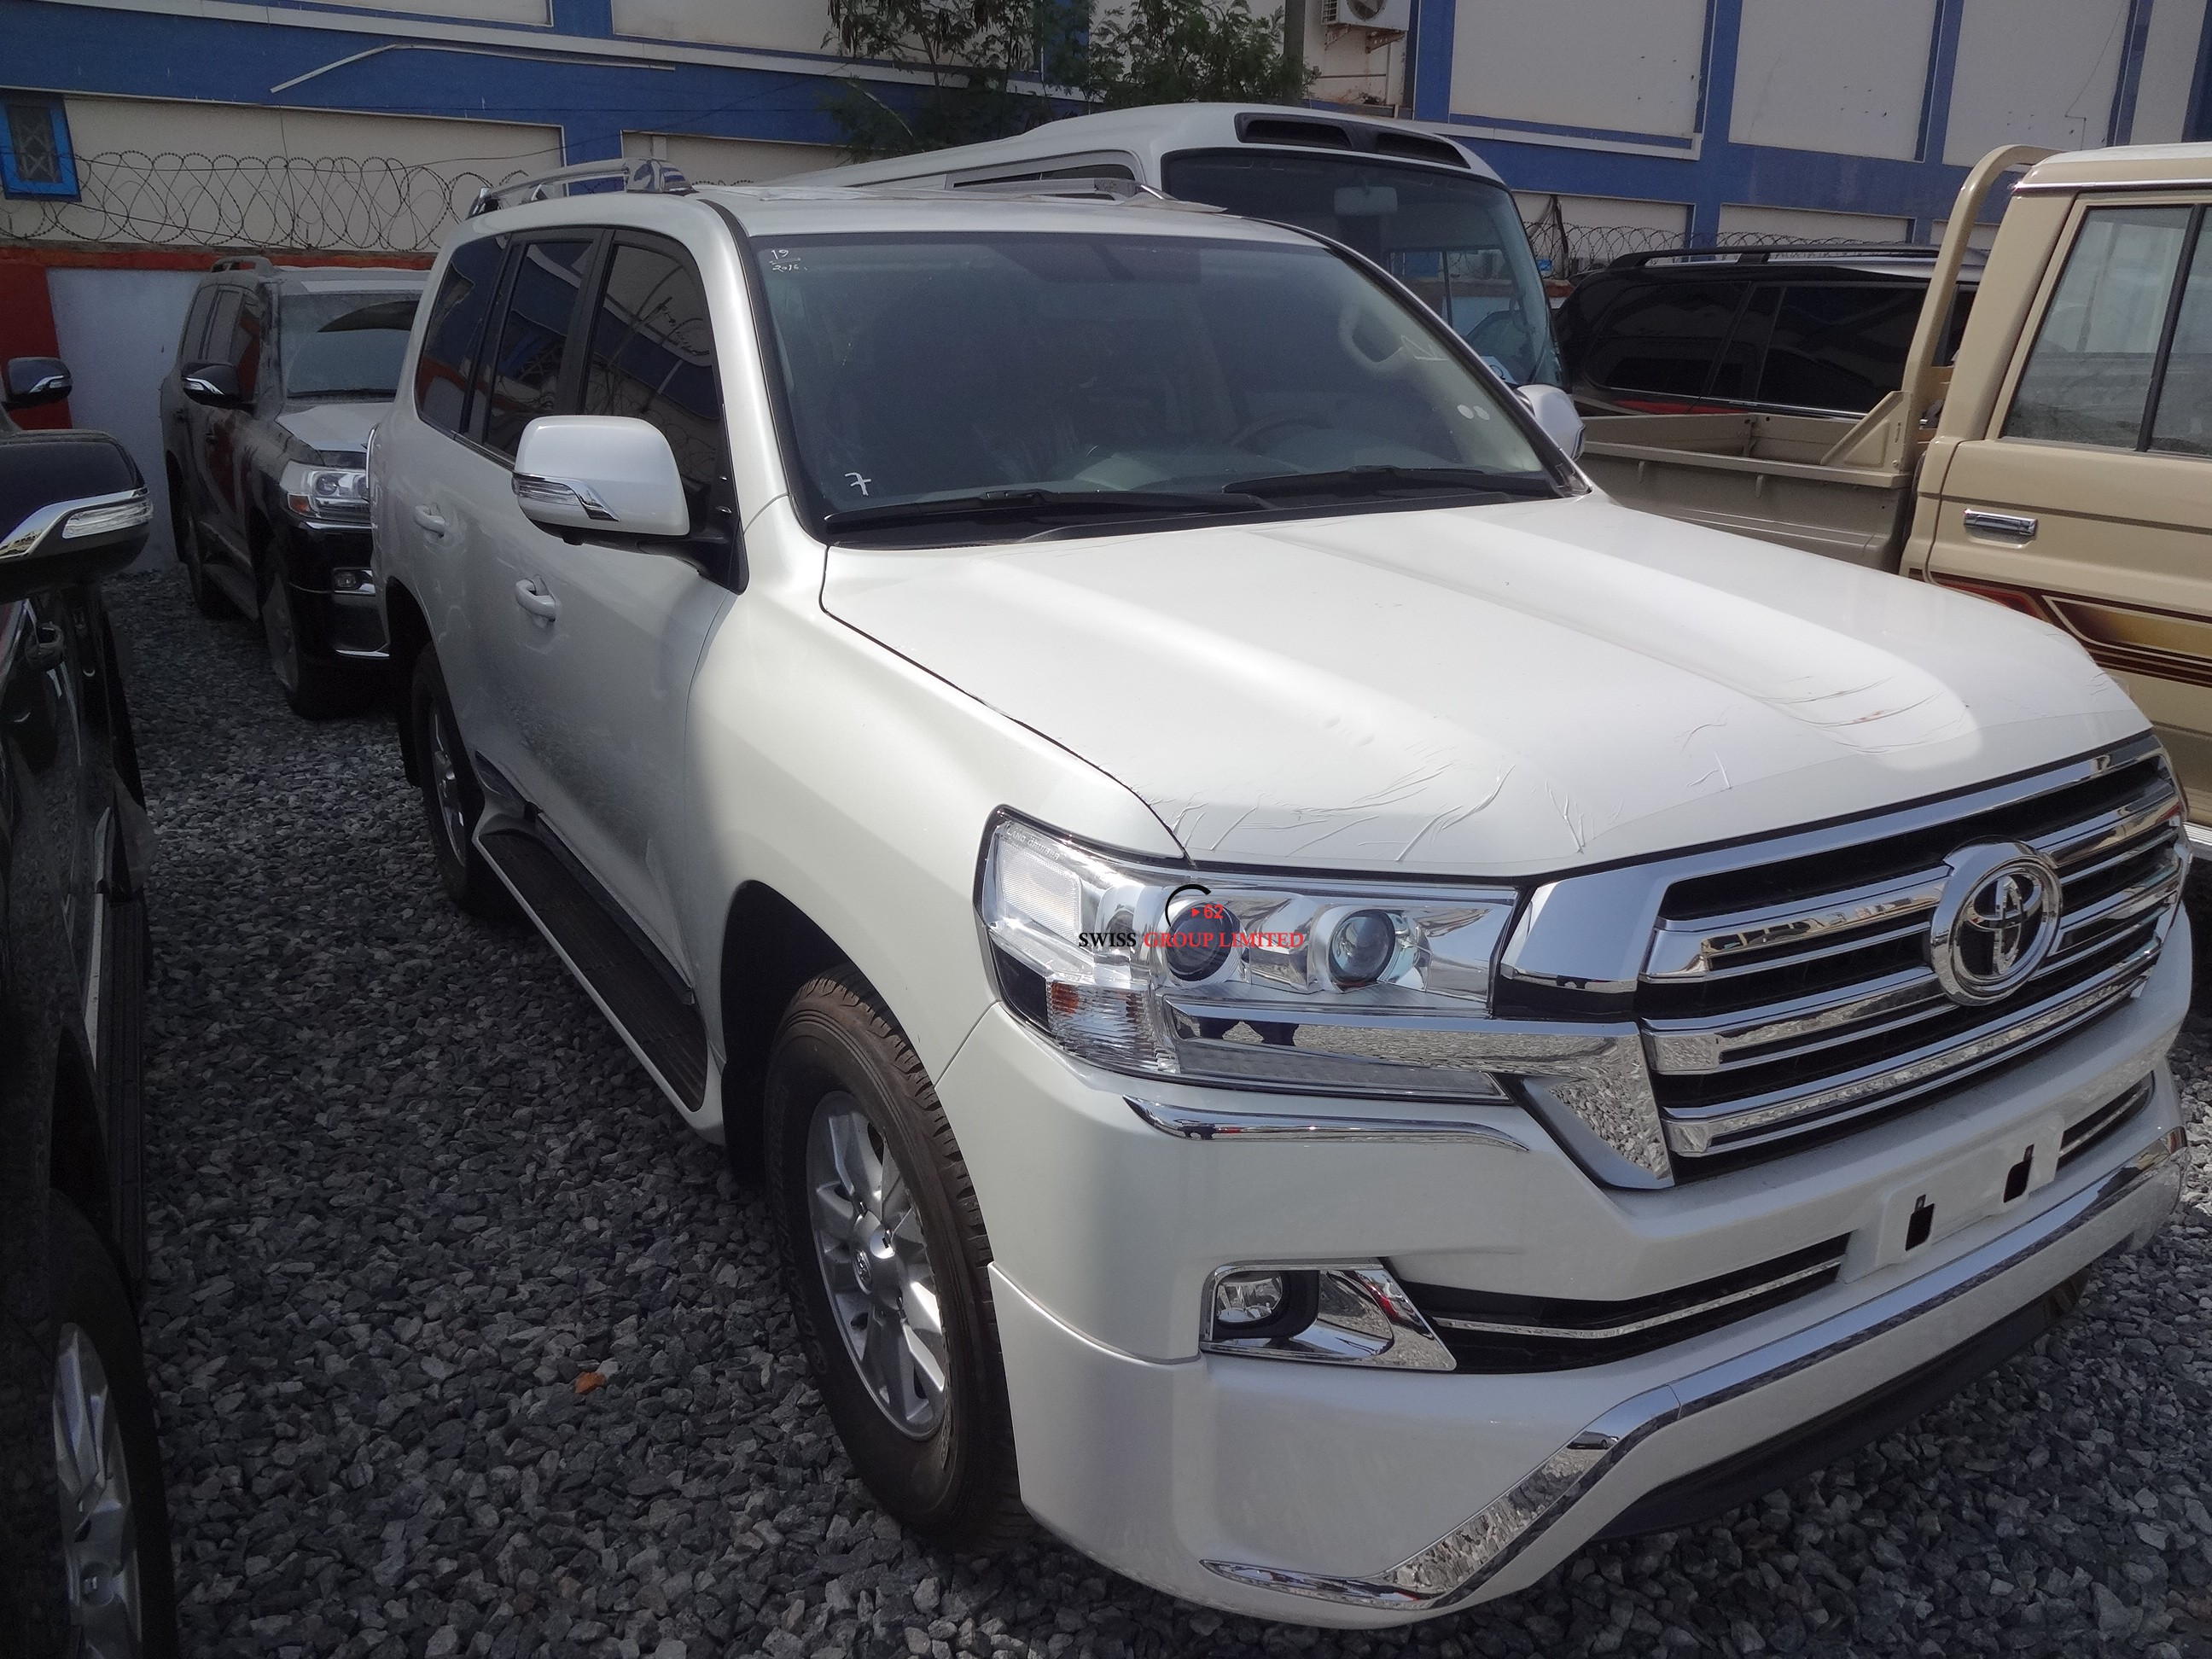 8 Passenger Suv >> Toyota Land Cruiser V8 White – Swiss Group Limited